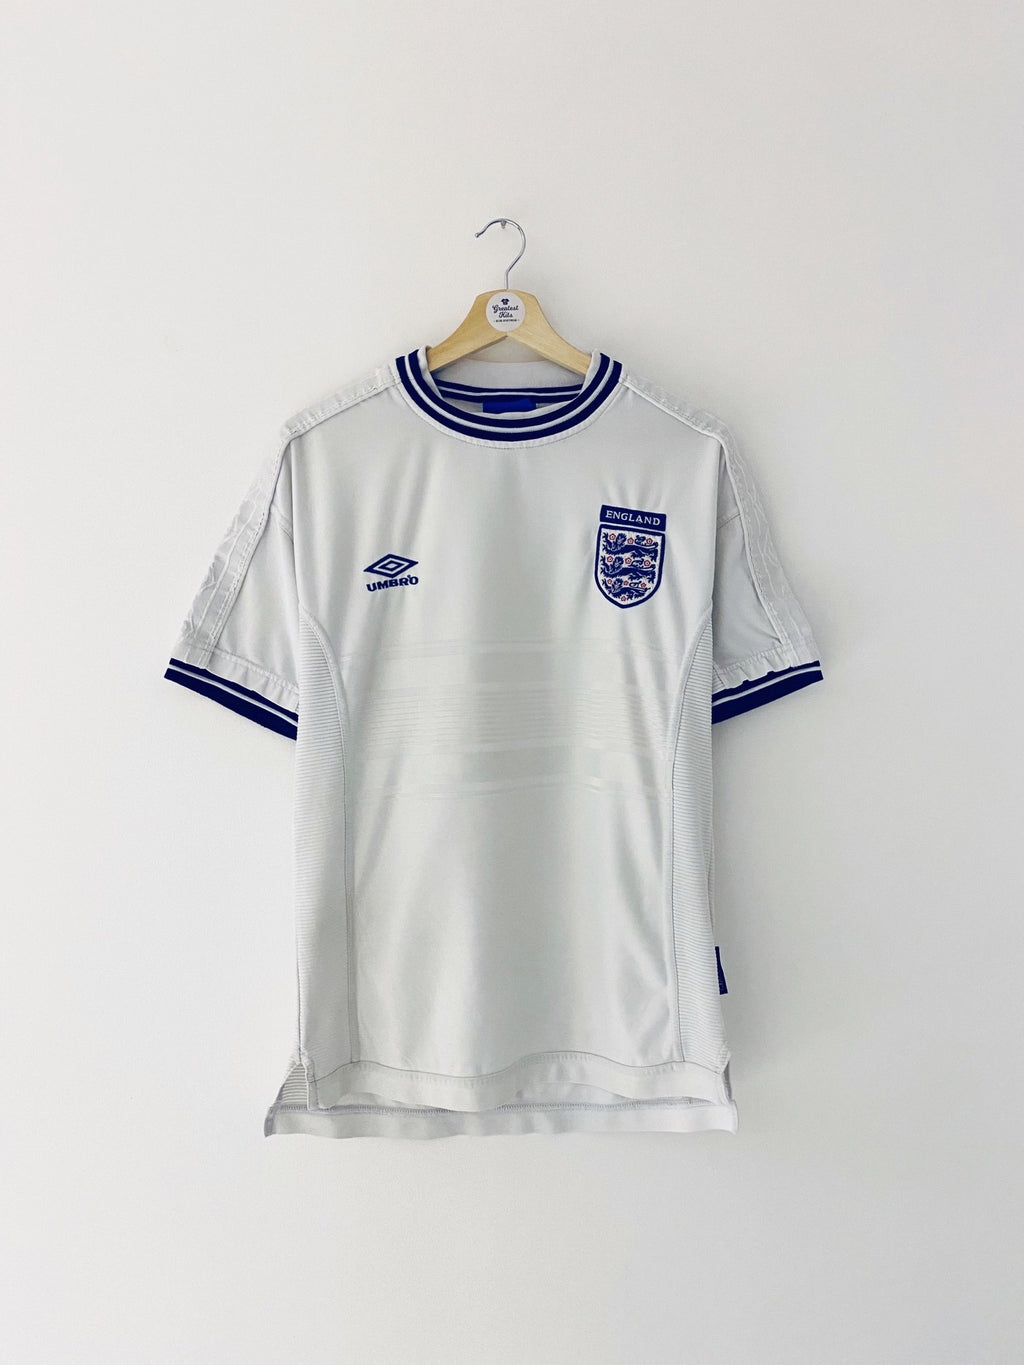 1999/01 England Home Shirt (M) 7.5/10